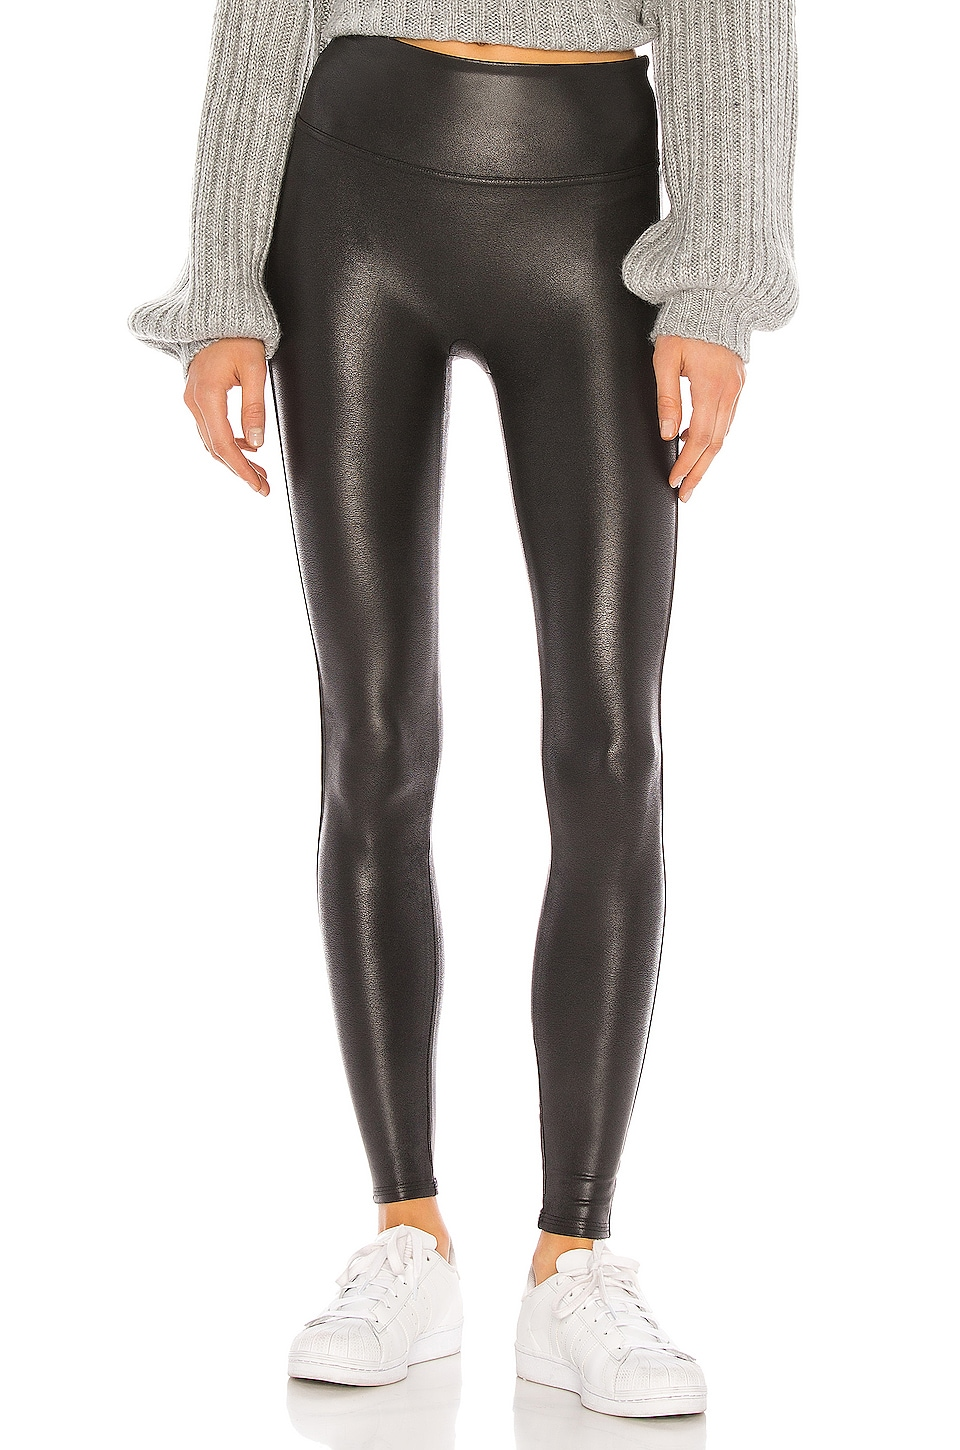 Petite Faux Leather Legging                     SPANX 5